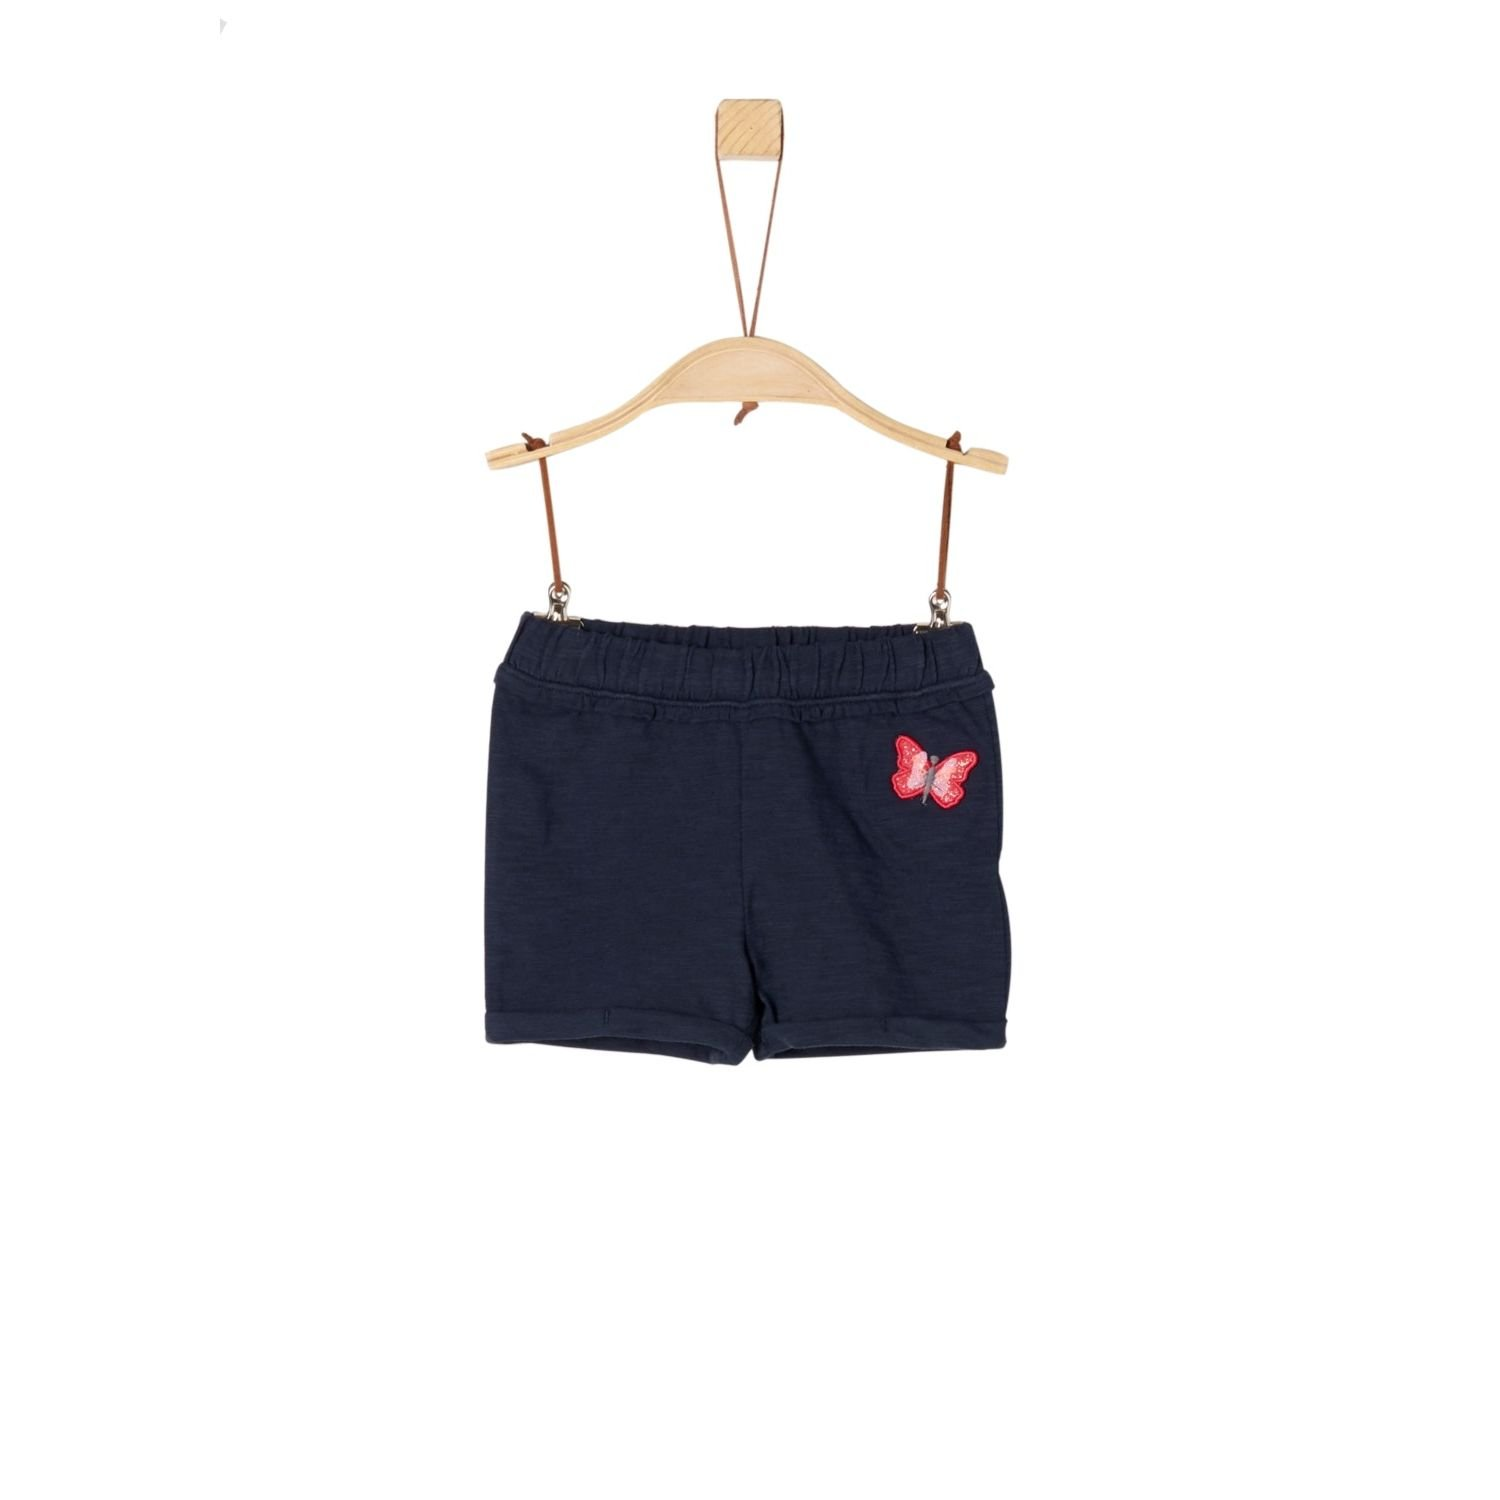 Shorts von soliver